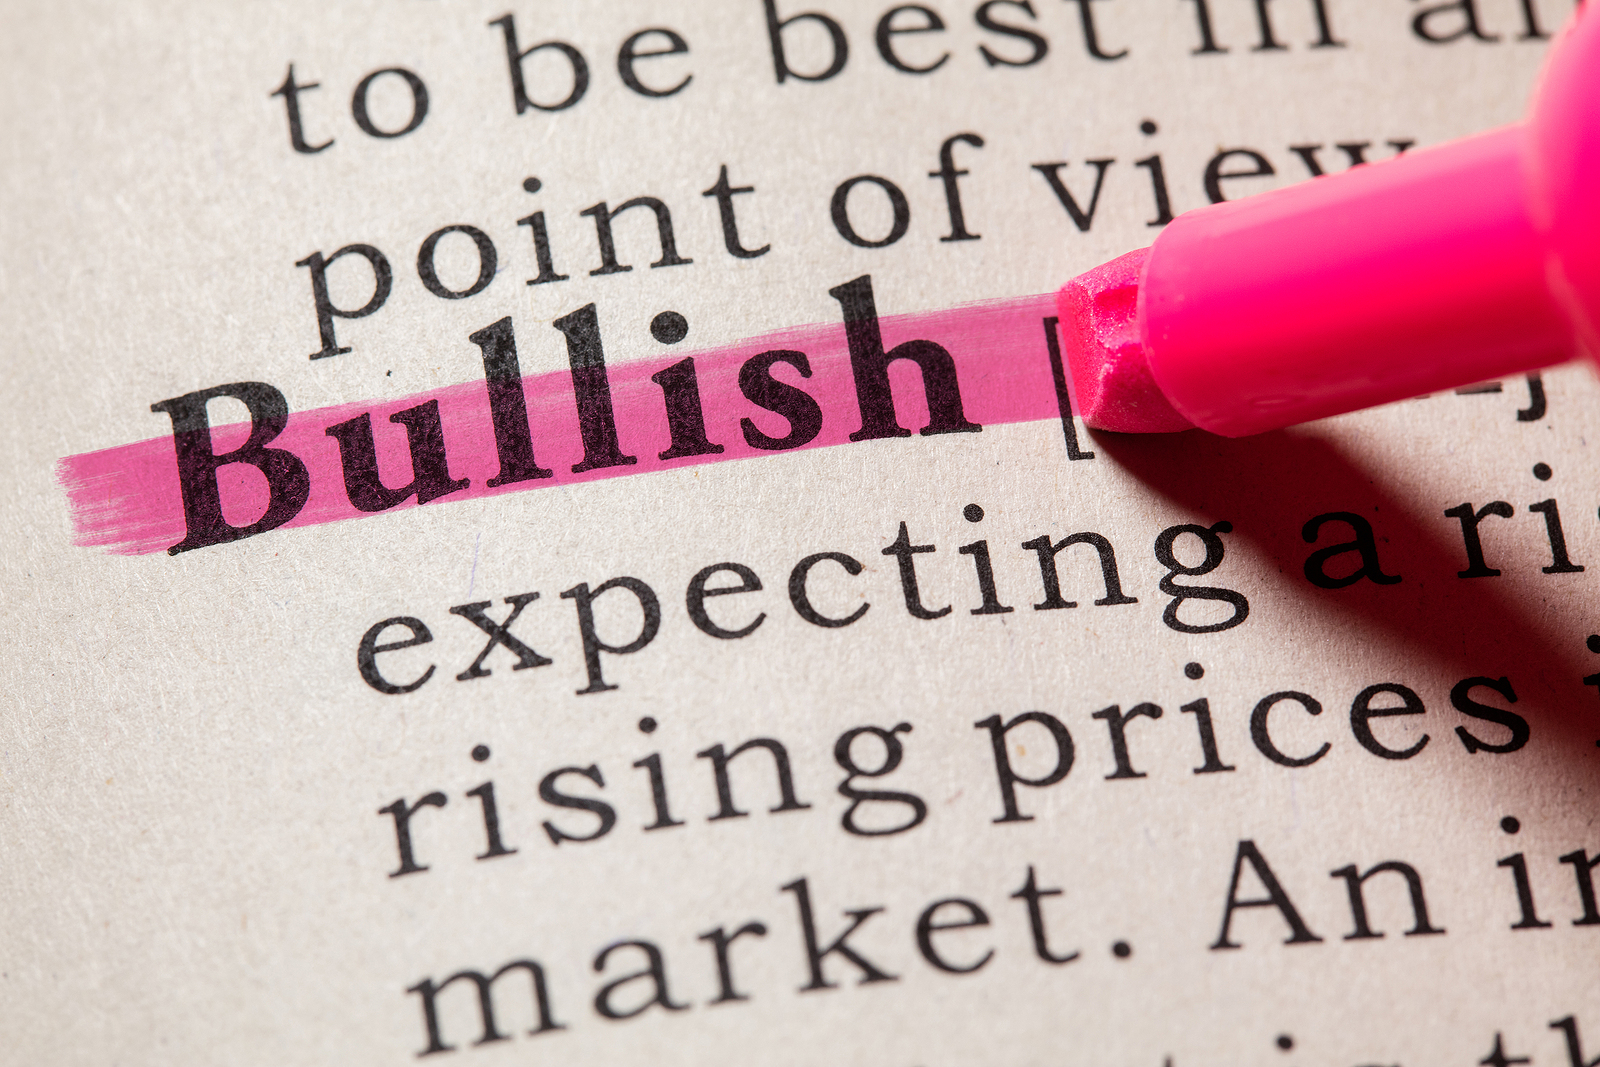 Bullish dictionary definition